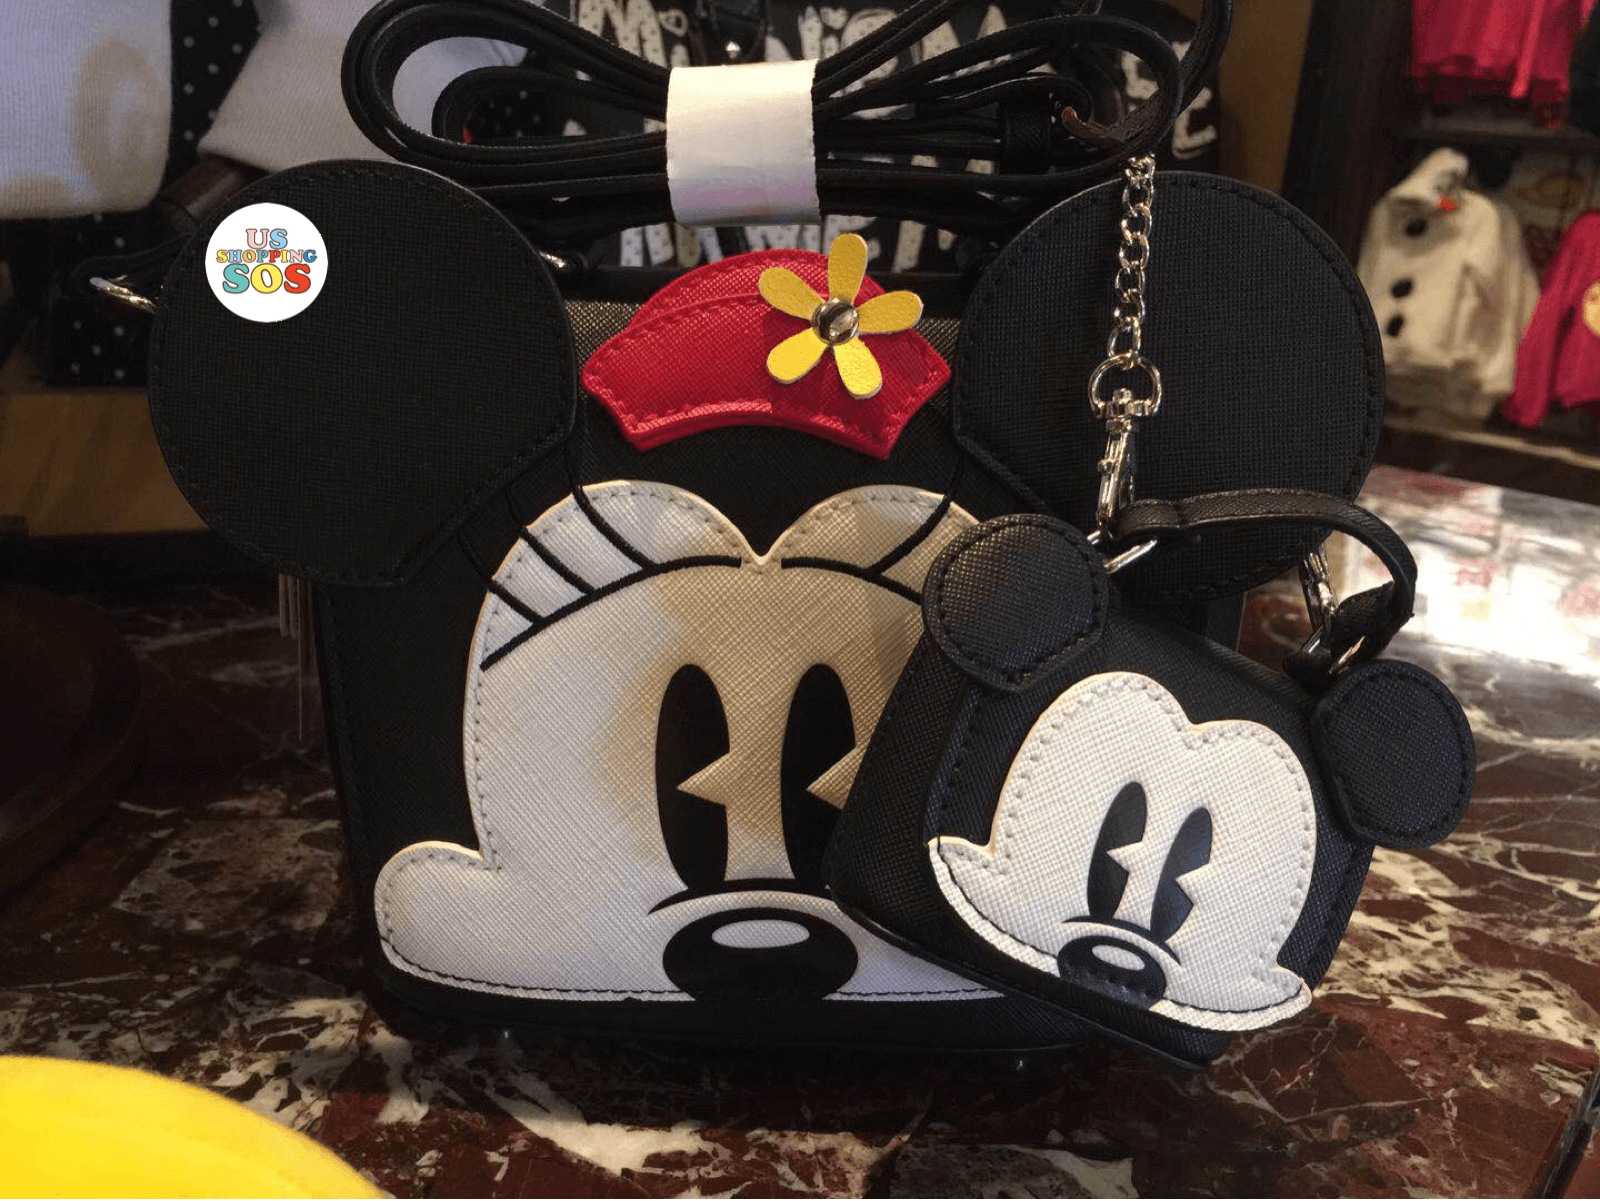 SHDL - Crossbody Bag + Coin Purse Set